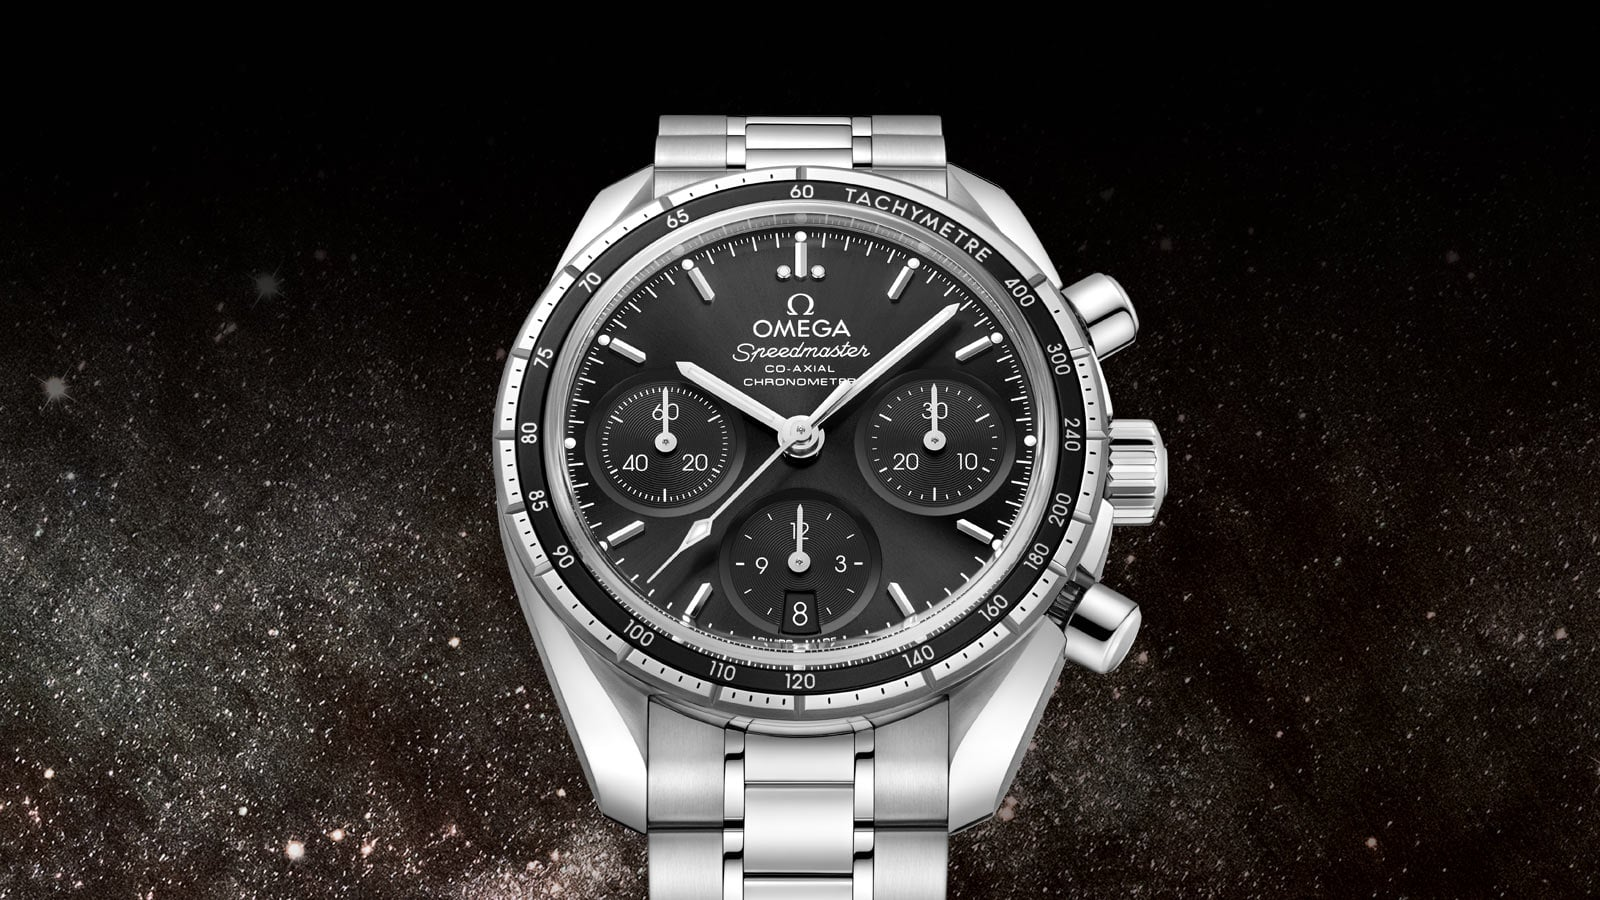 Speedmaster 38mm watch with a black dial and round subdials